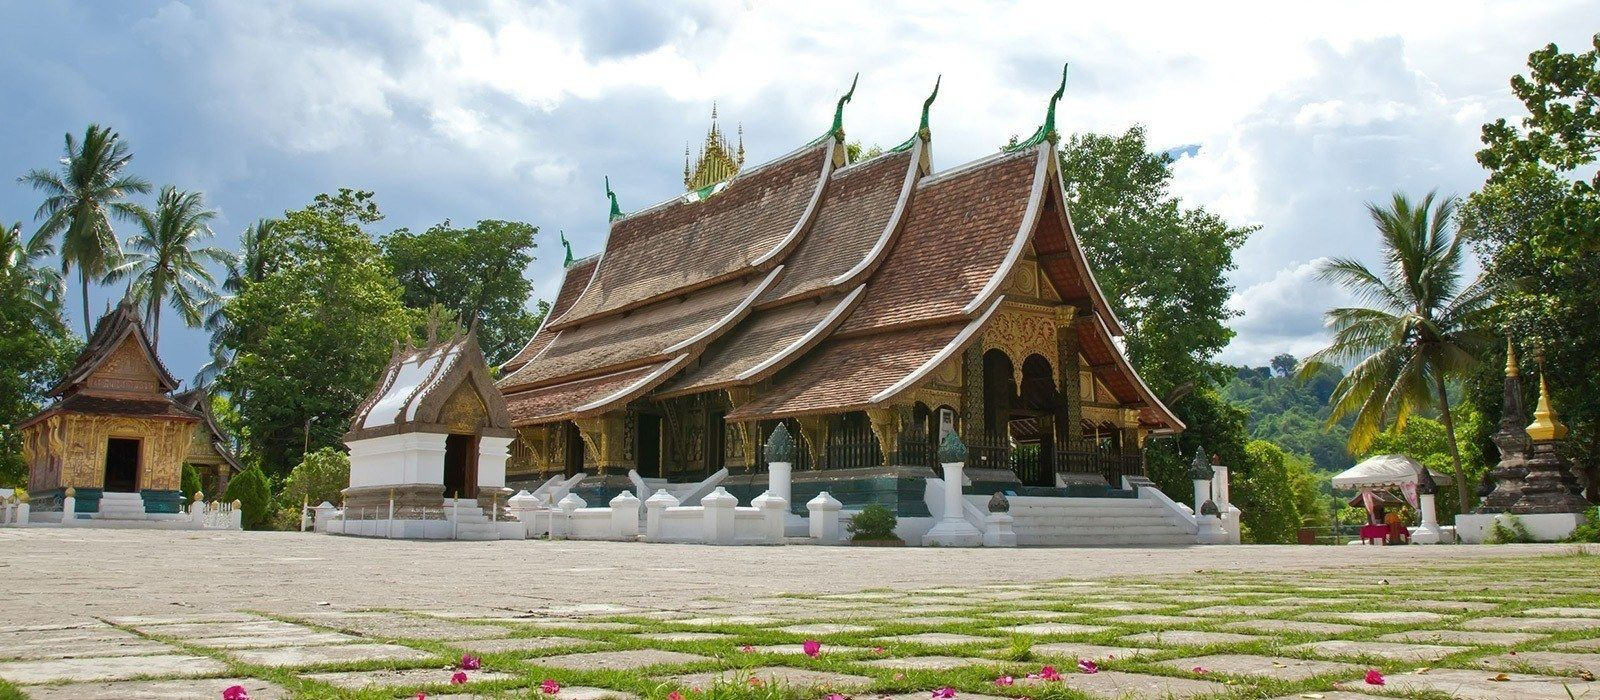 Live Laos: From Monks to Mekong Tour Trip 3